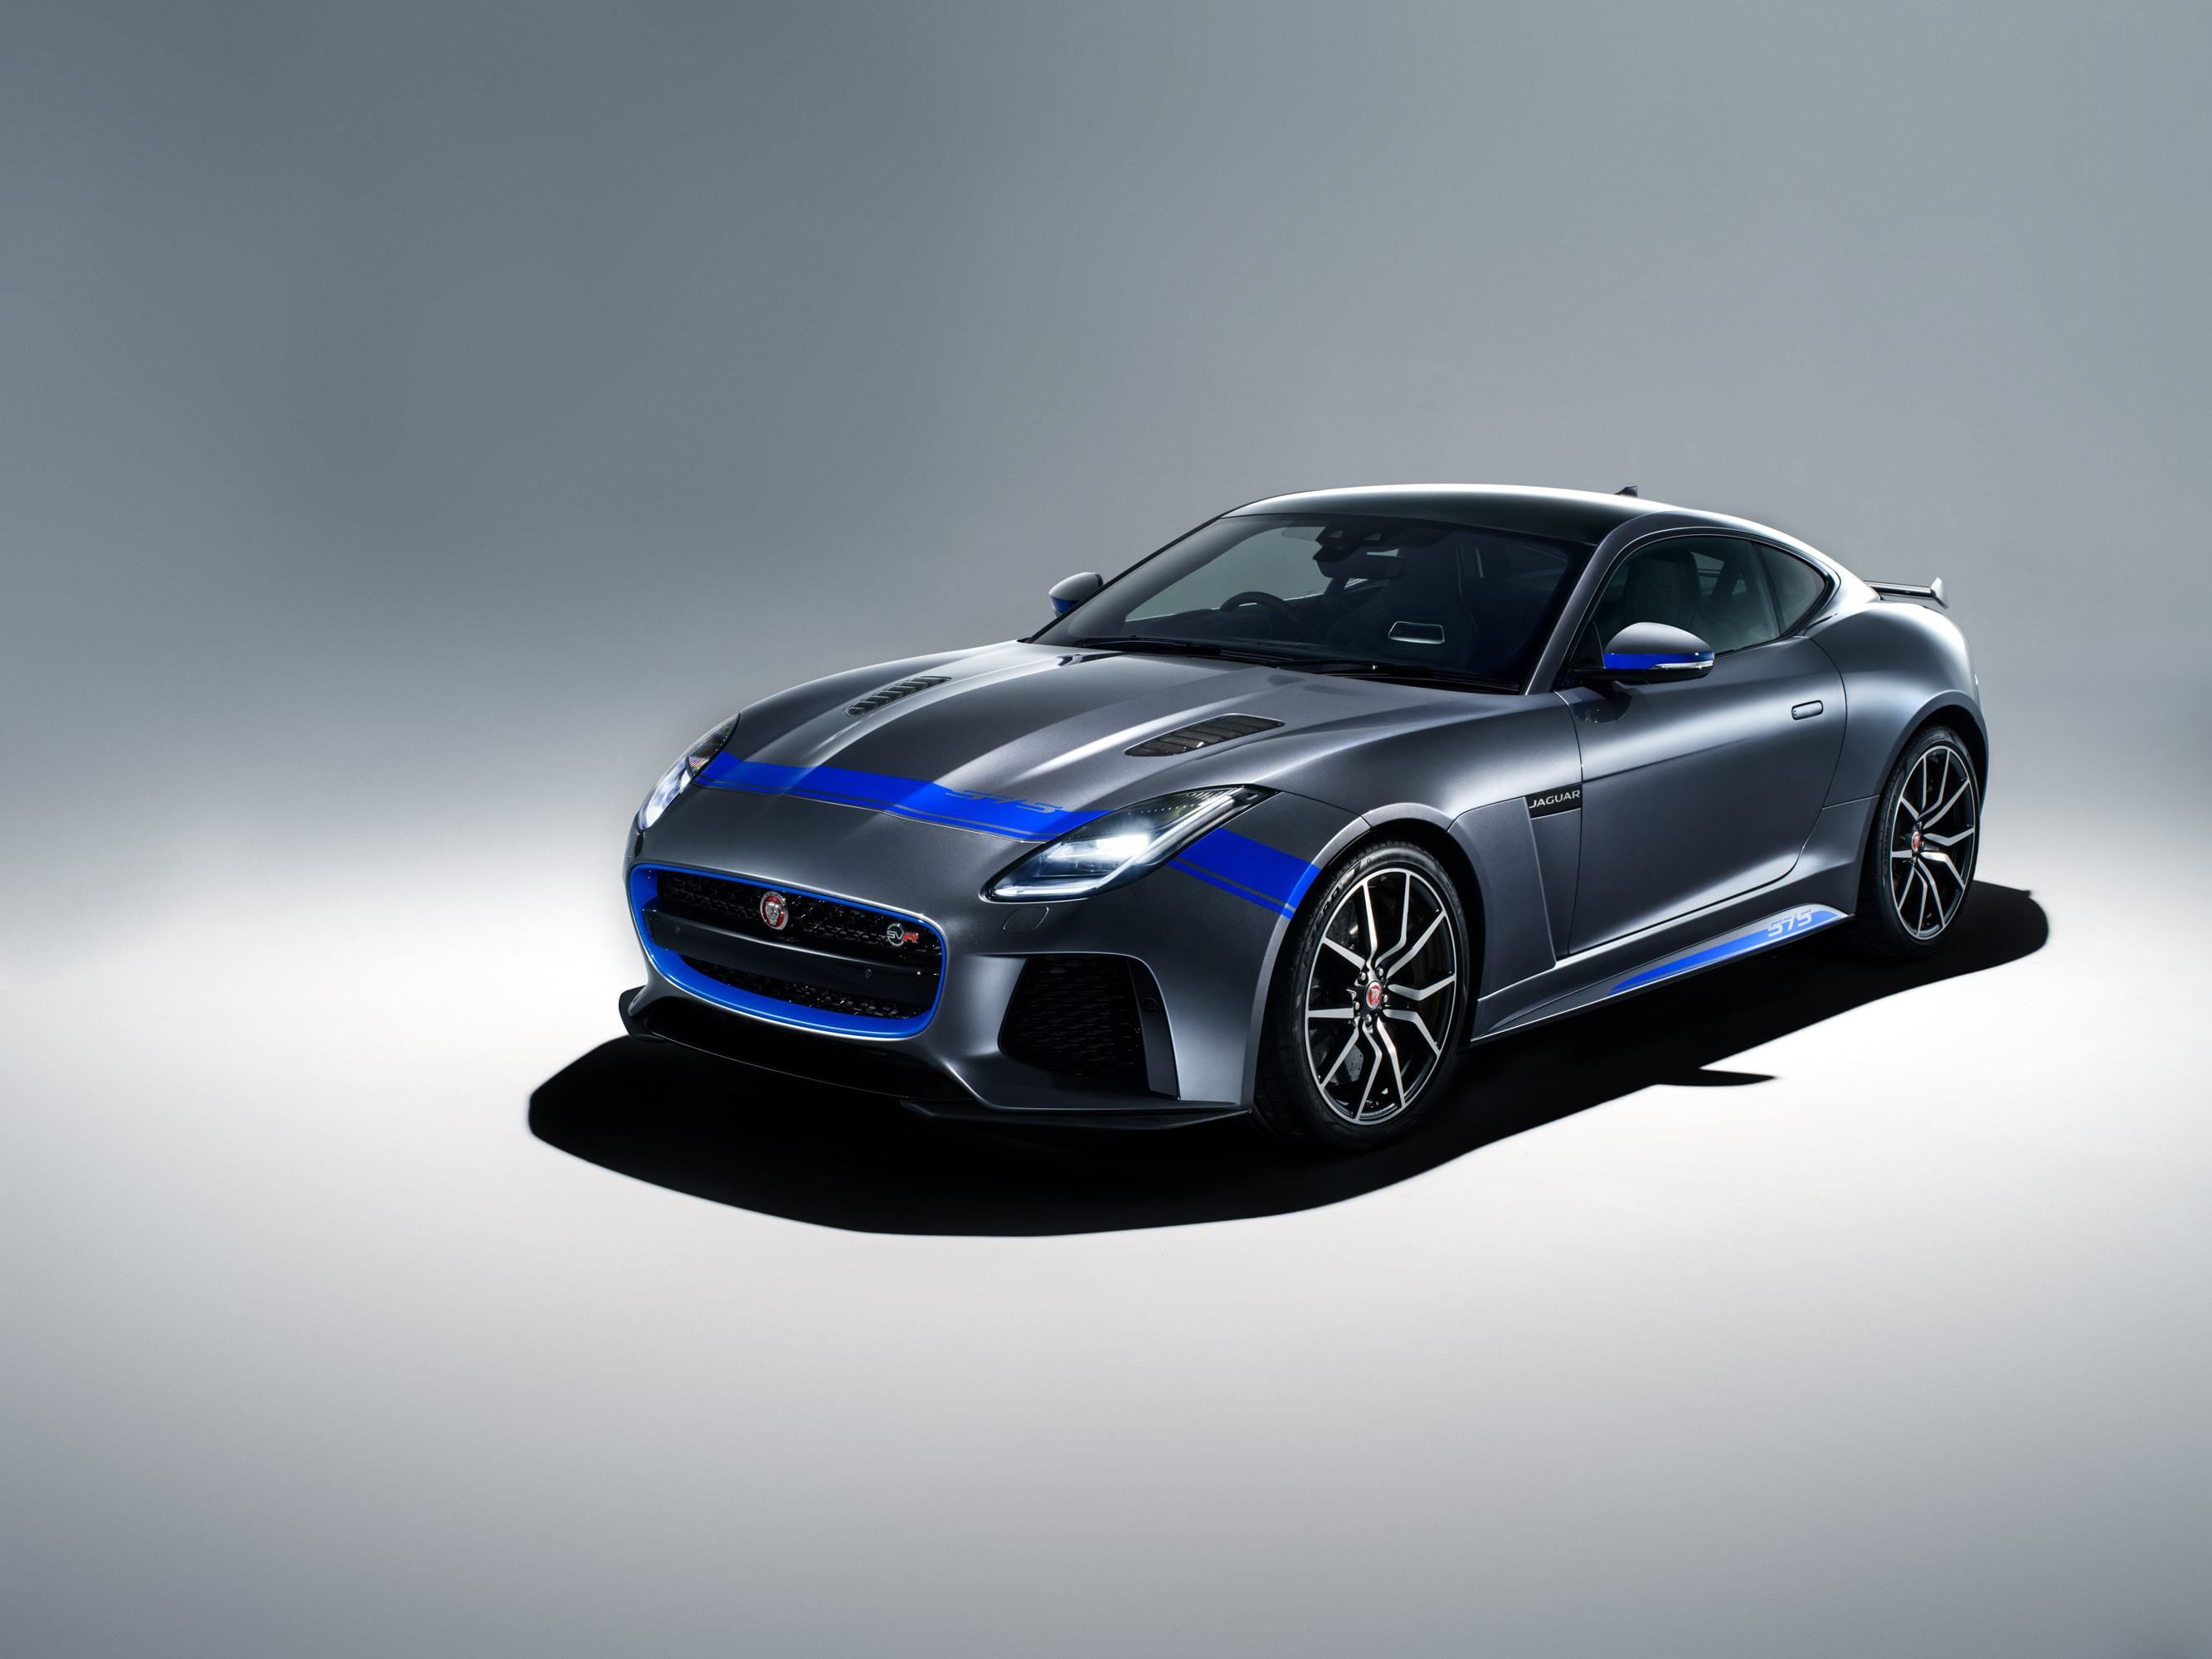 Jaguar F Type Svr Supercar Got New Graphic Packs Jaguar F Type Jaguar New Jaguar